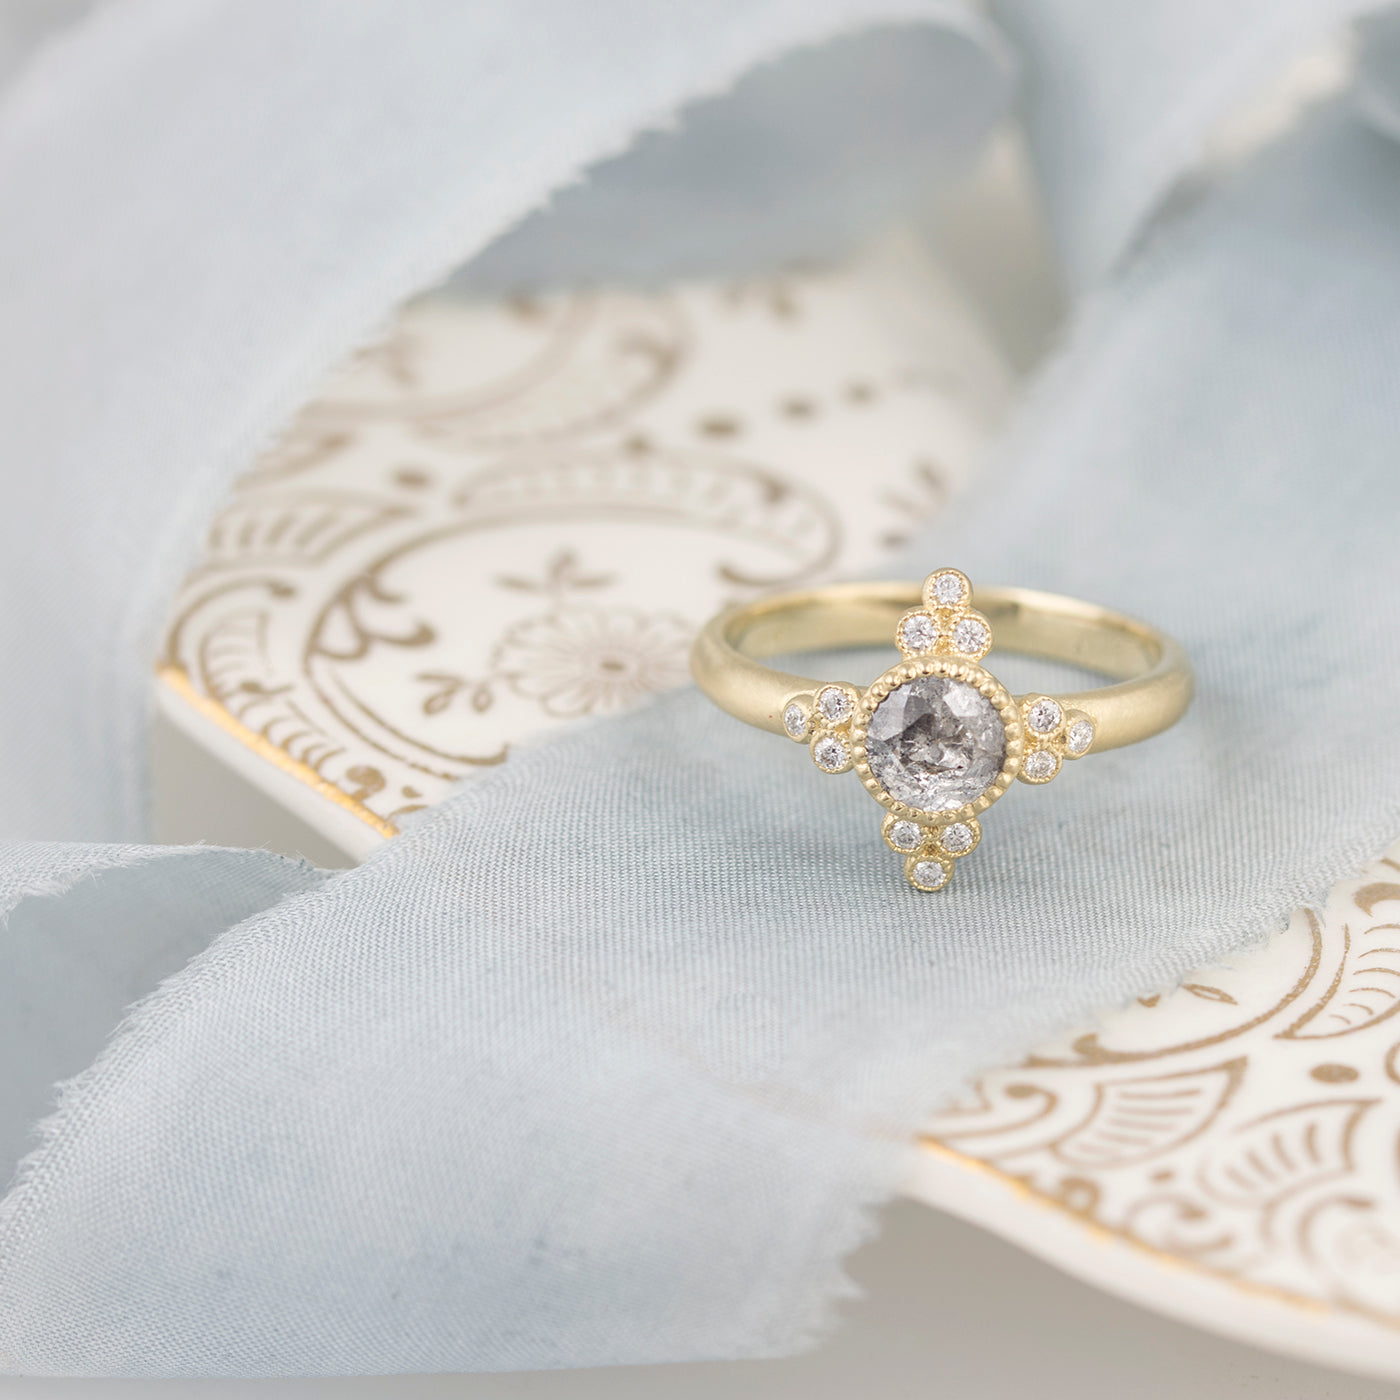 Grey Rose Cut Diamond Engagement Ring